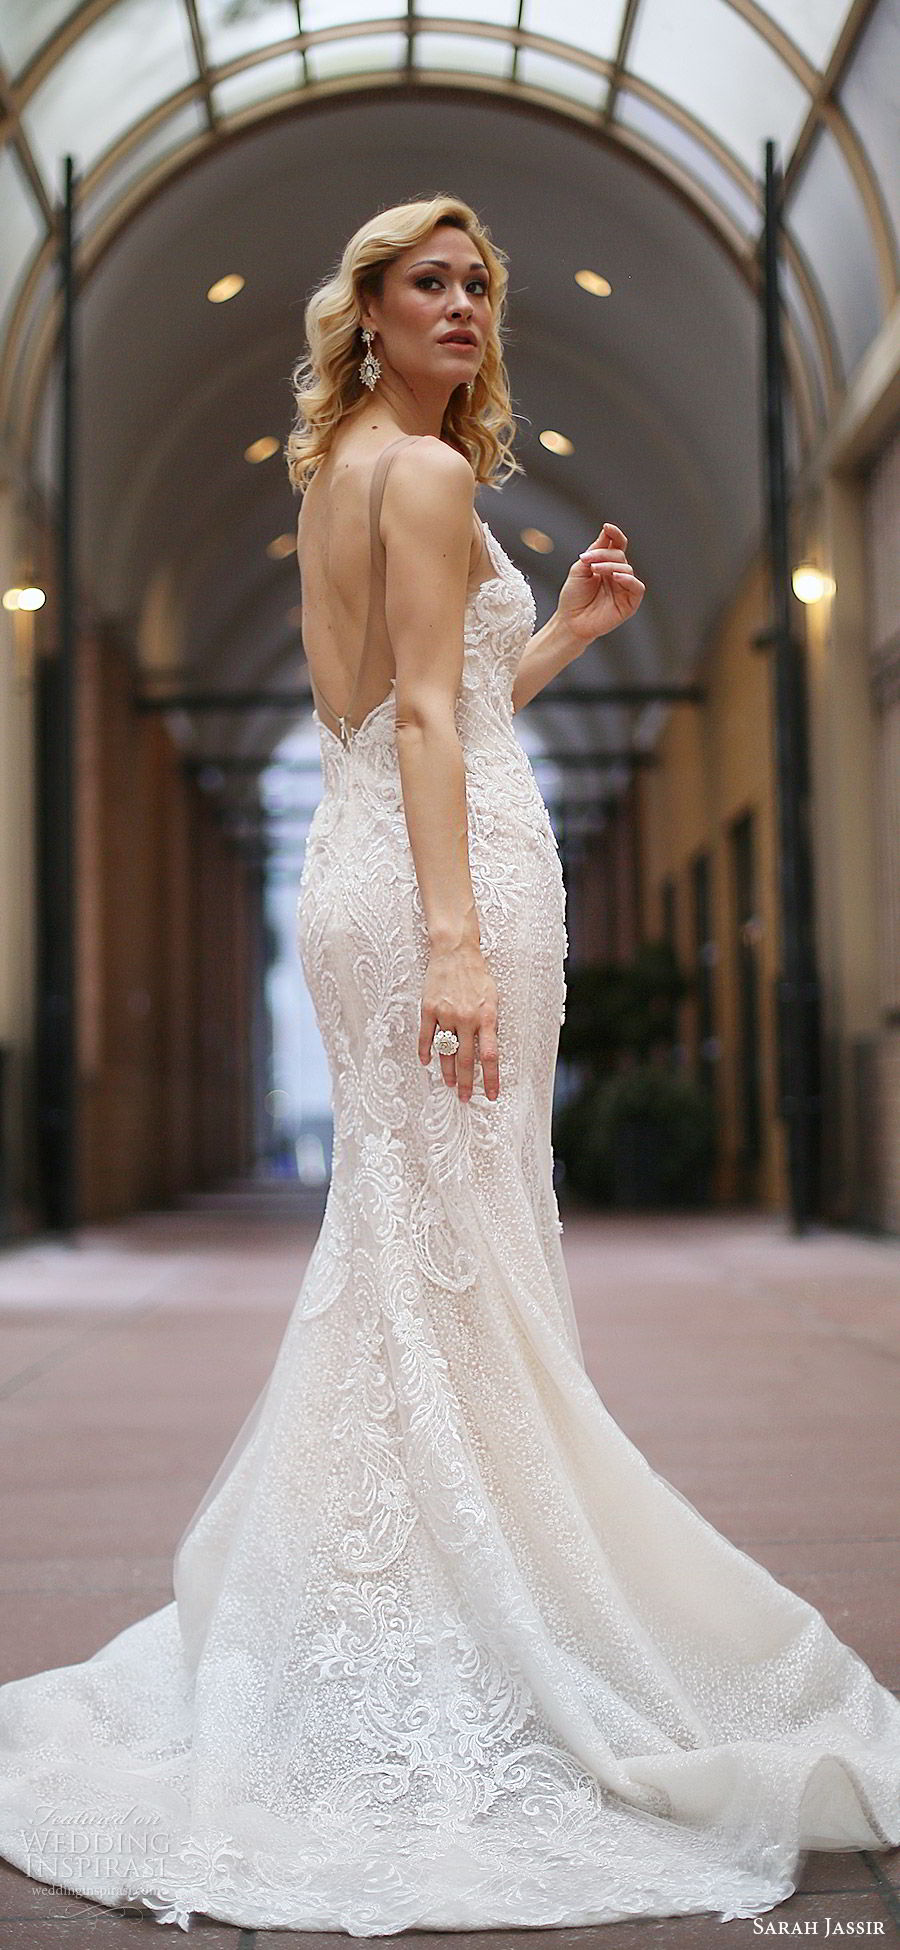 sarah jassir bridal 2018 sleeveles illusion straps sweetheart v neck sheer v neck embellished sheath wedding dress (lexi) bv low back sweep train